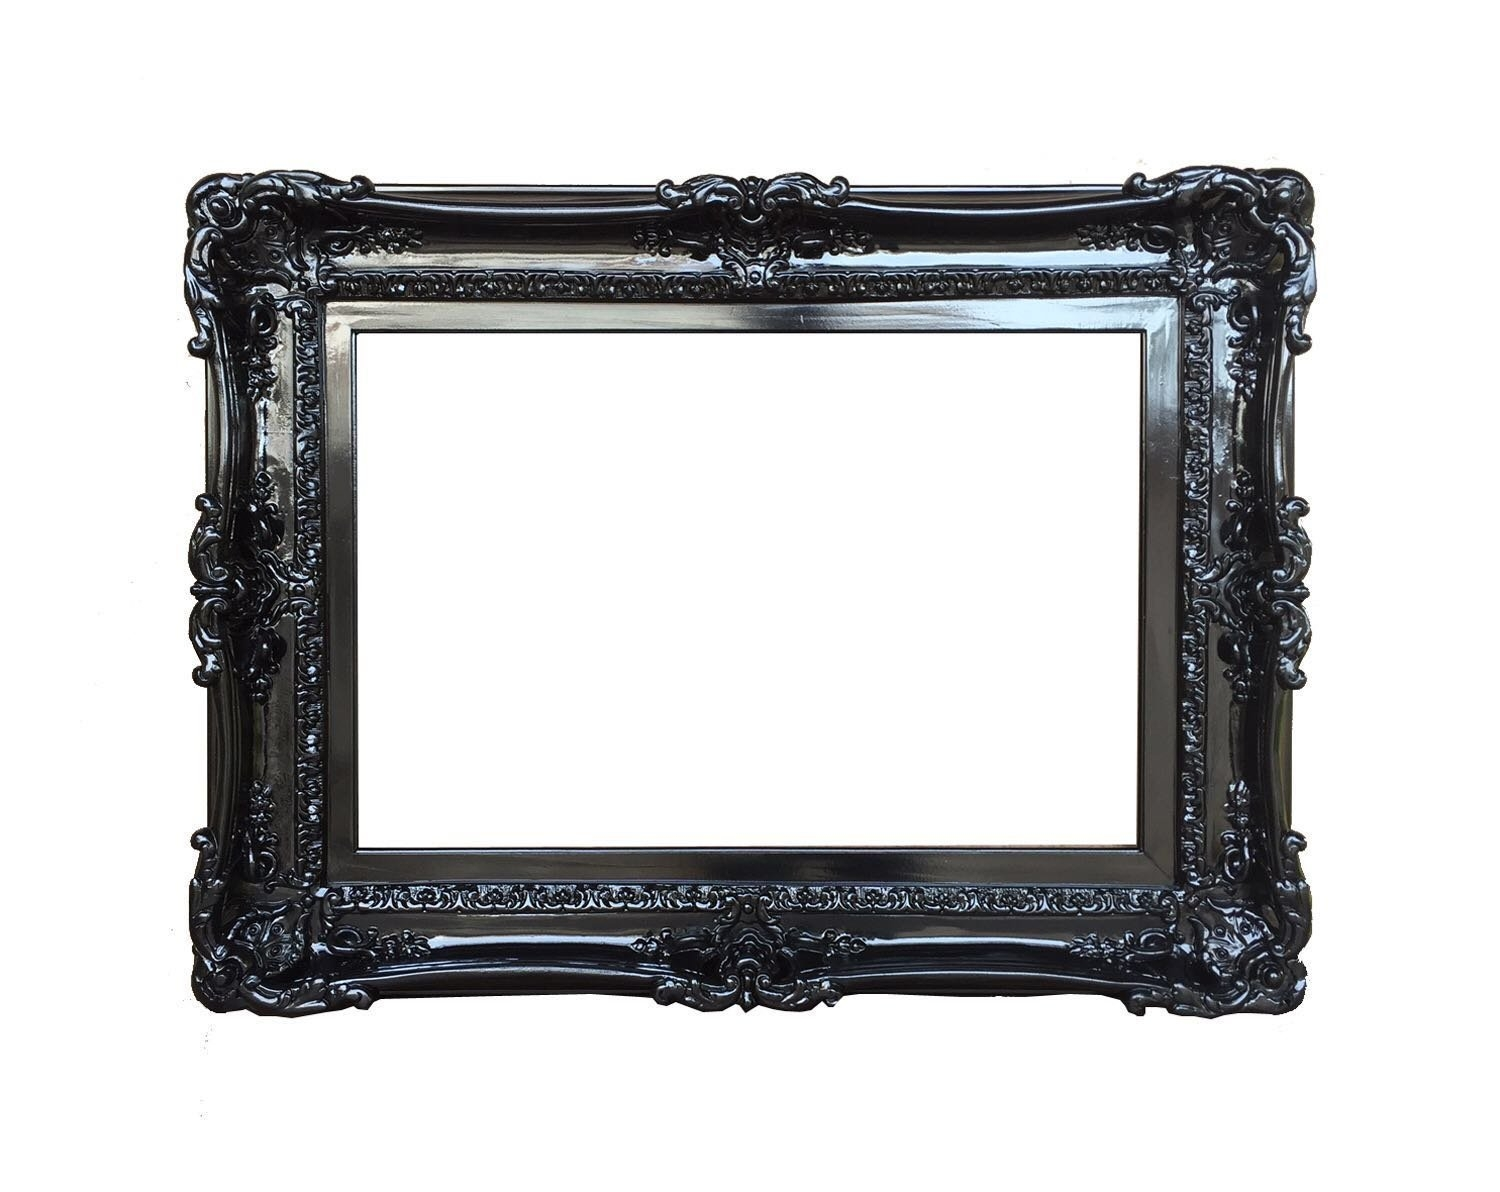 Amazon 20×24 Baroque Black Frame Ornate Wall Mirror Inside Black Baroque Mirror (Image 1 of 15)